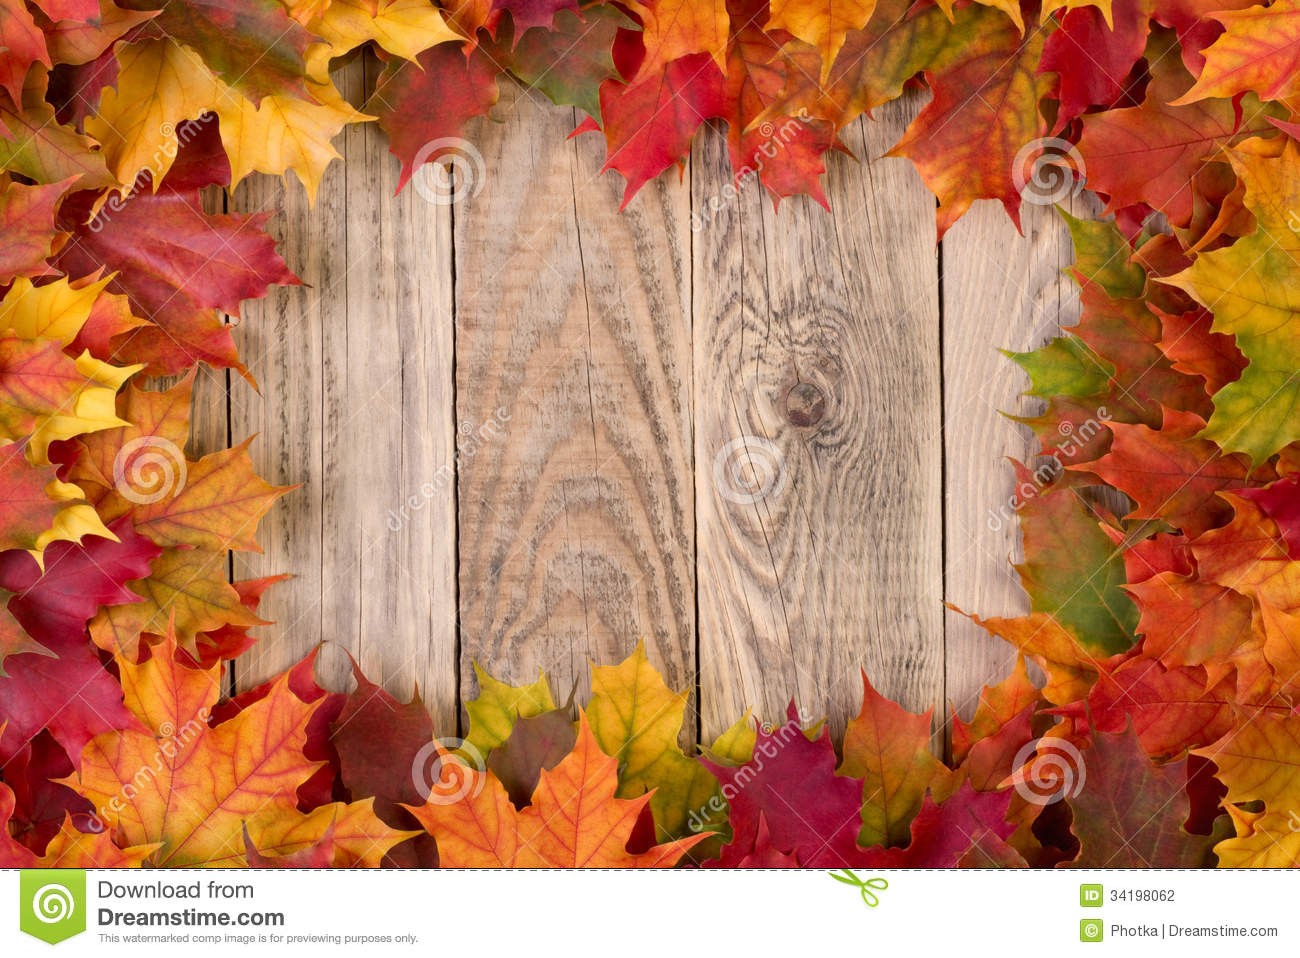 Hd Wallpaper Texture Fall Harvest Fall Leaves Frame Stock Photo Image Of Yellow Plank